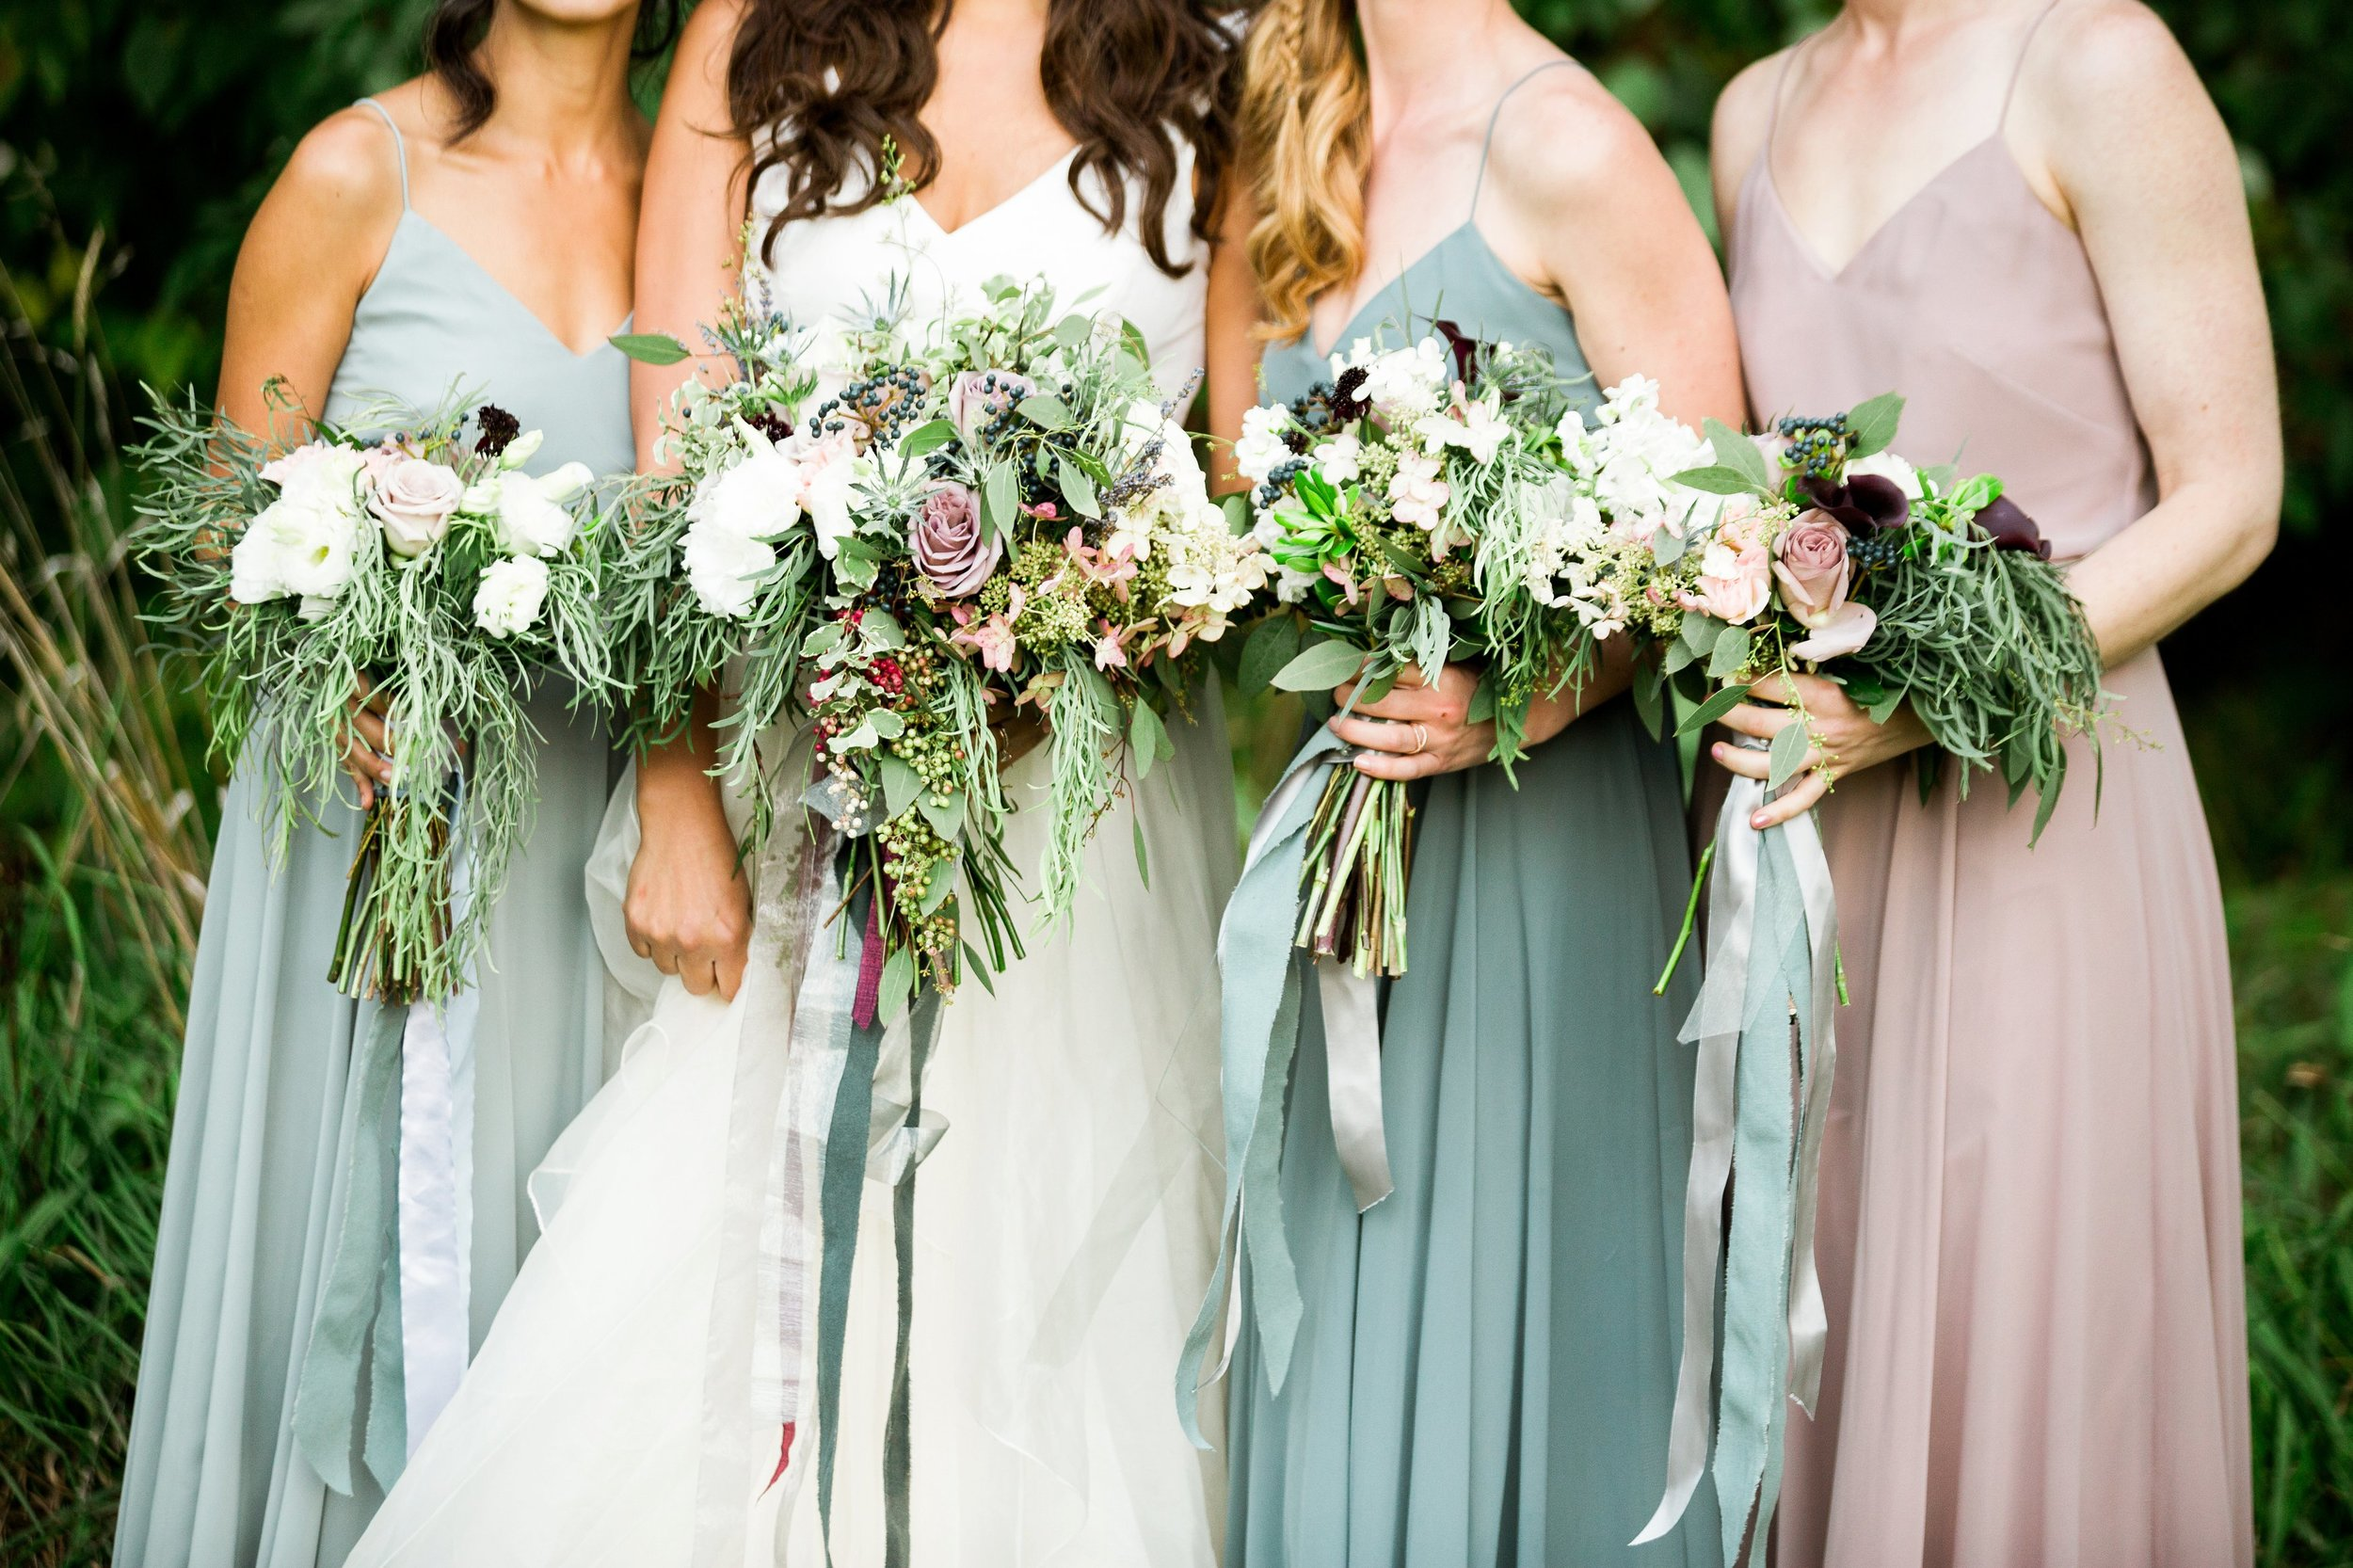 blue mismatched bridesmaid dresses and bouquets by seattle photographer janelle elaine.jpg